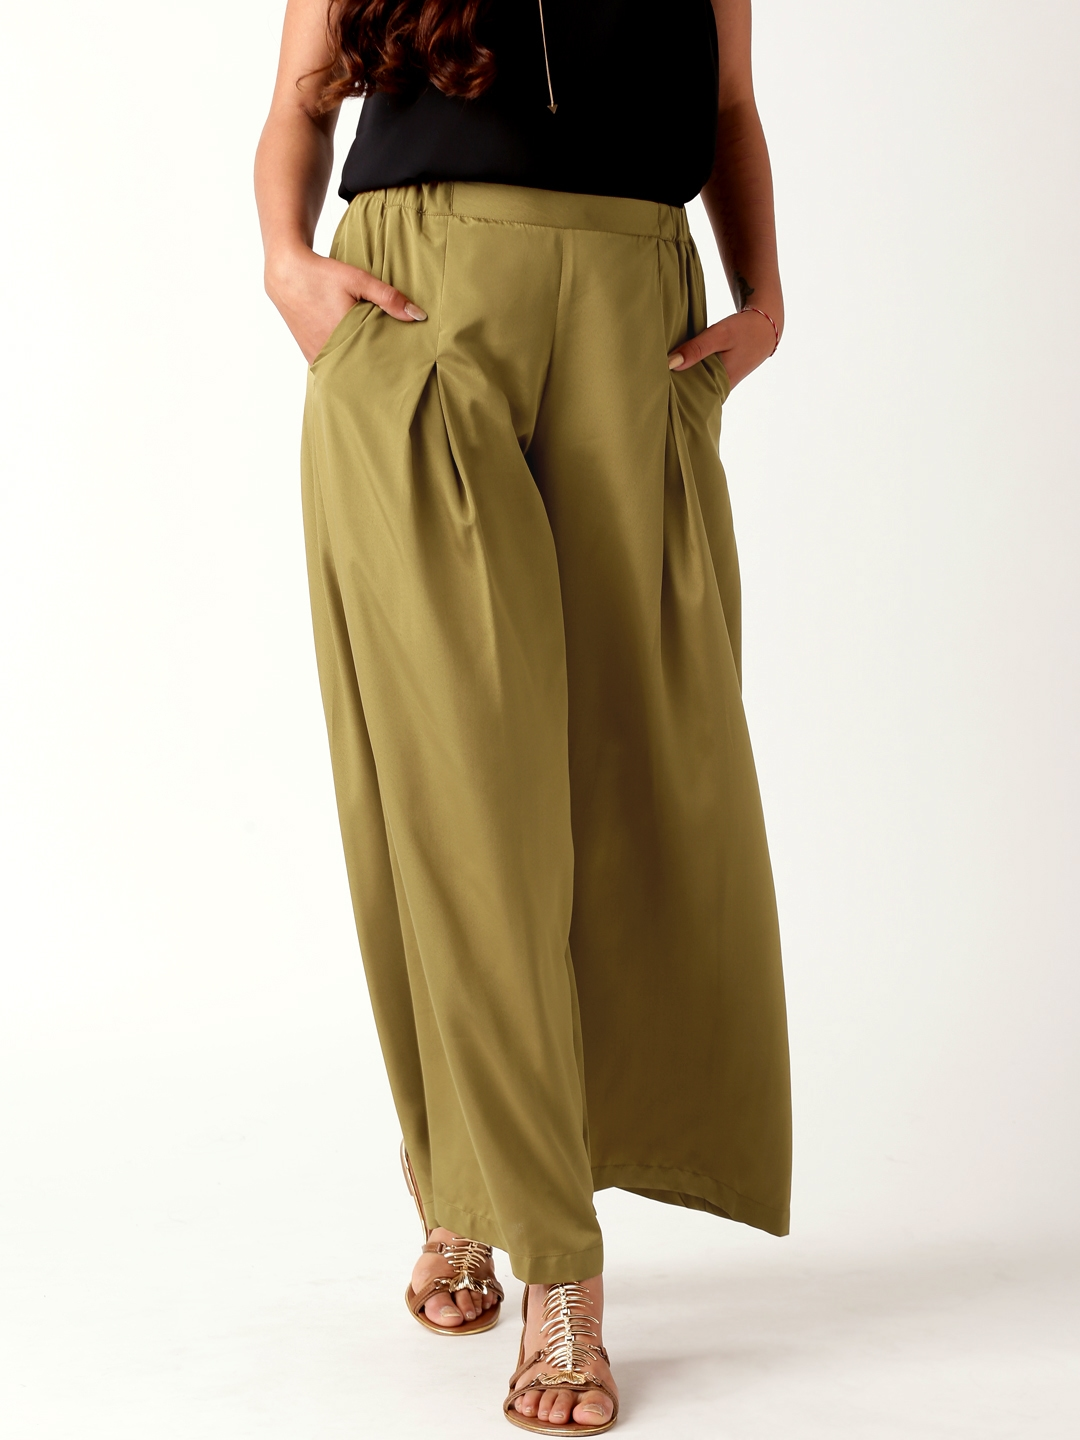 Buy All About You From Deepika Padukone Olive Green Palazzo Trousers